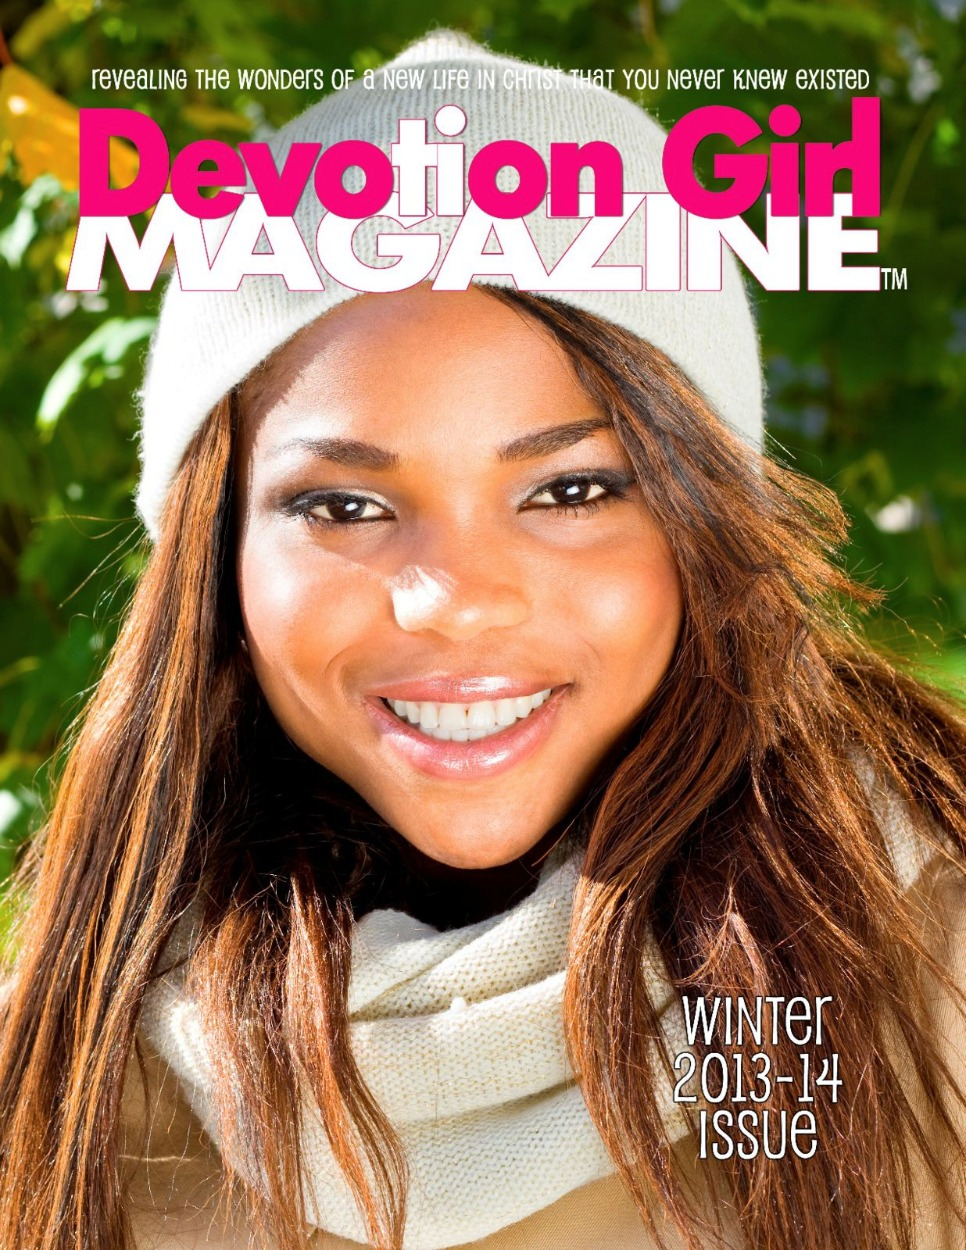 Devotion Magazine Winter 2013 -14 Issue